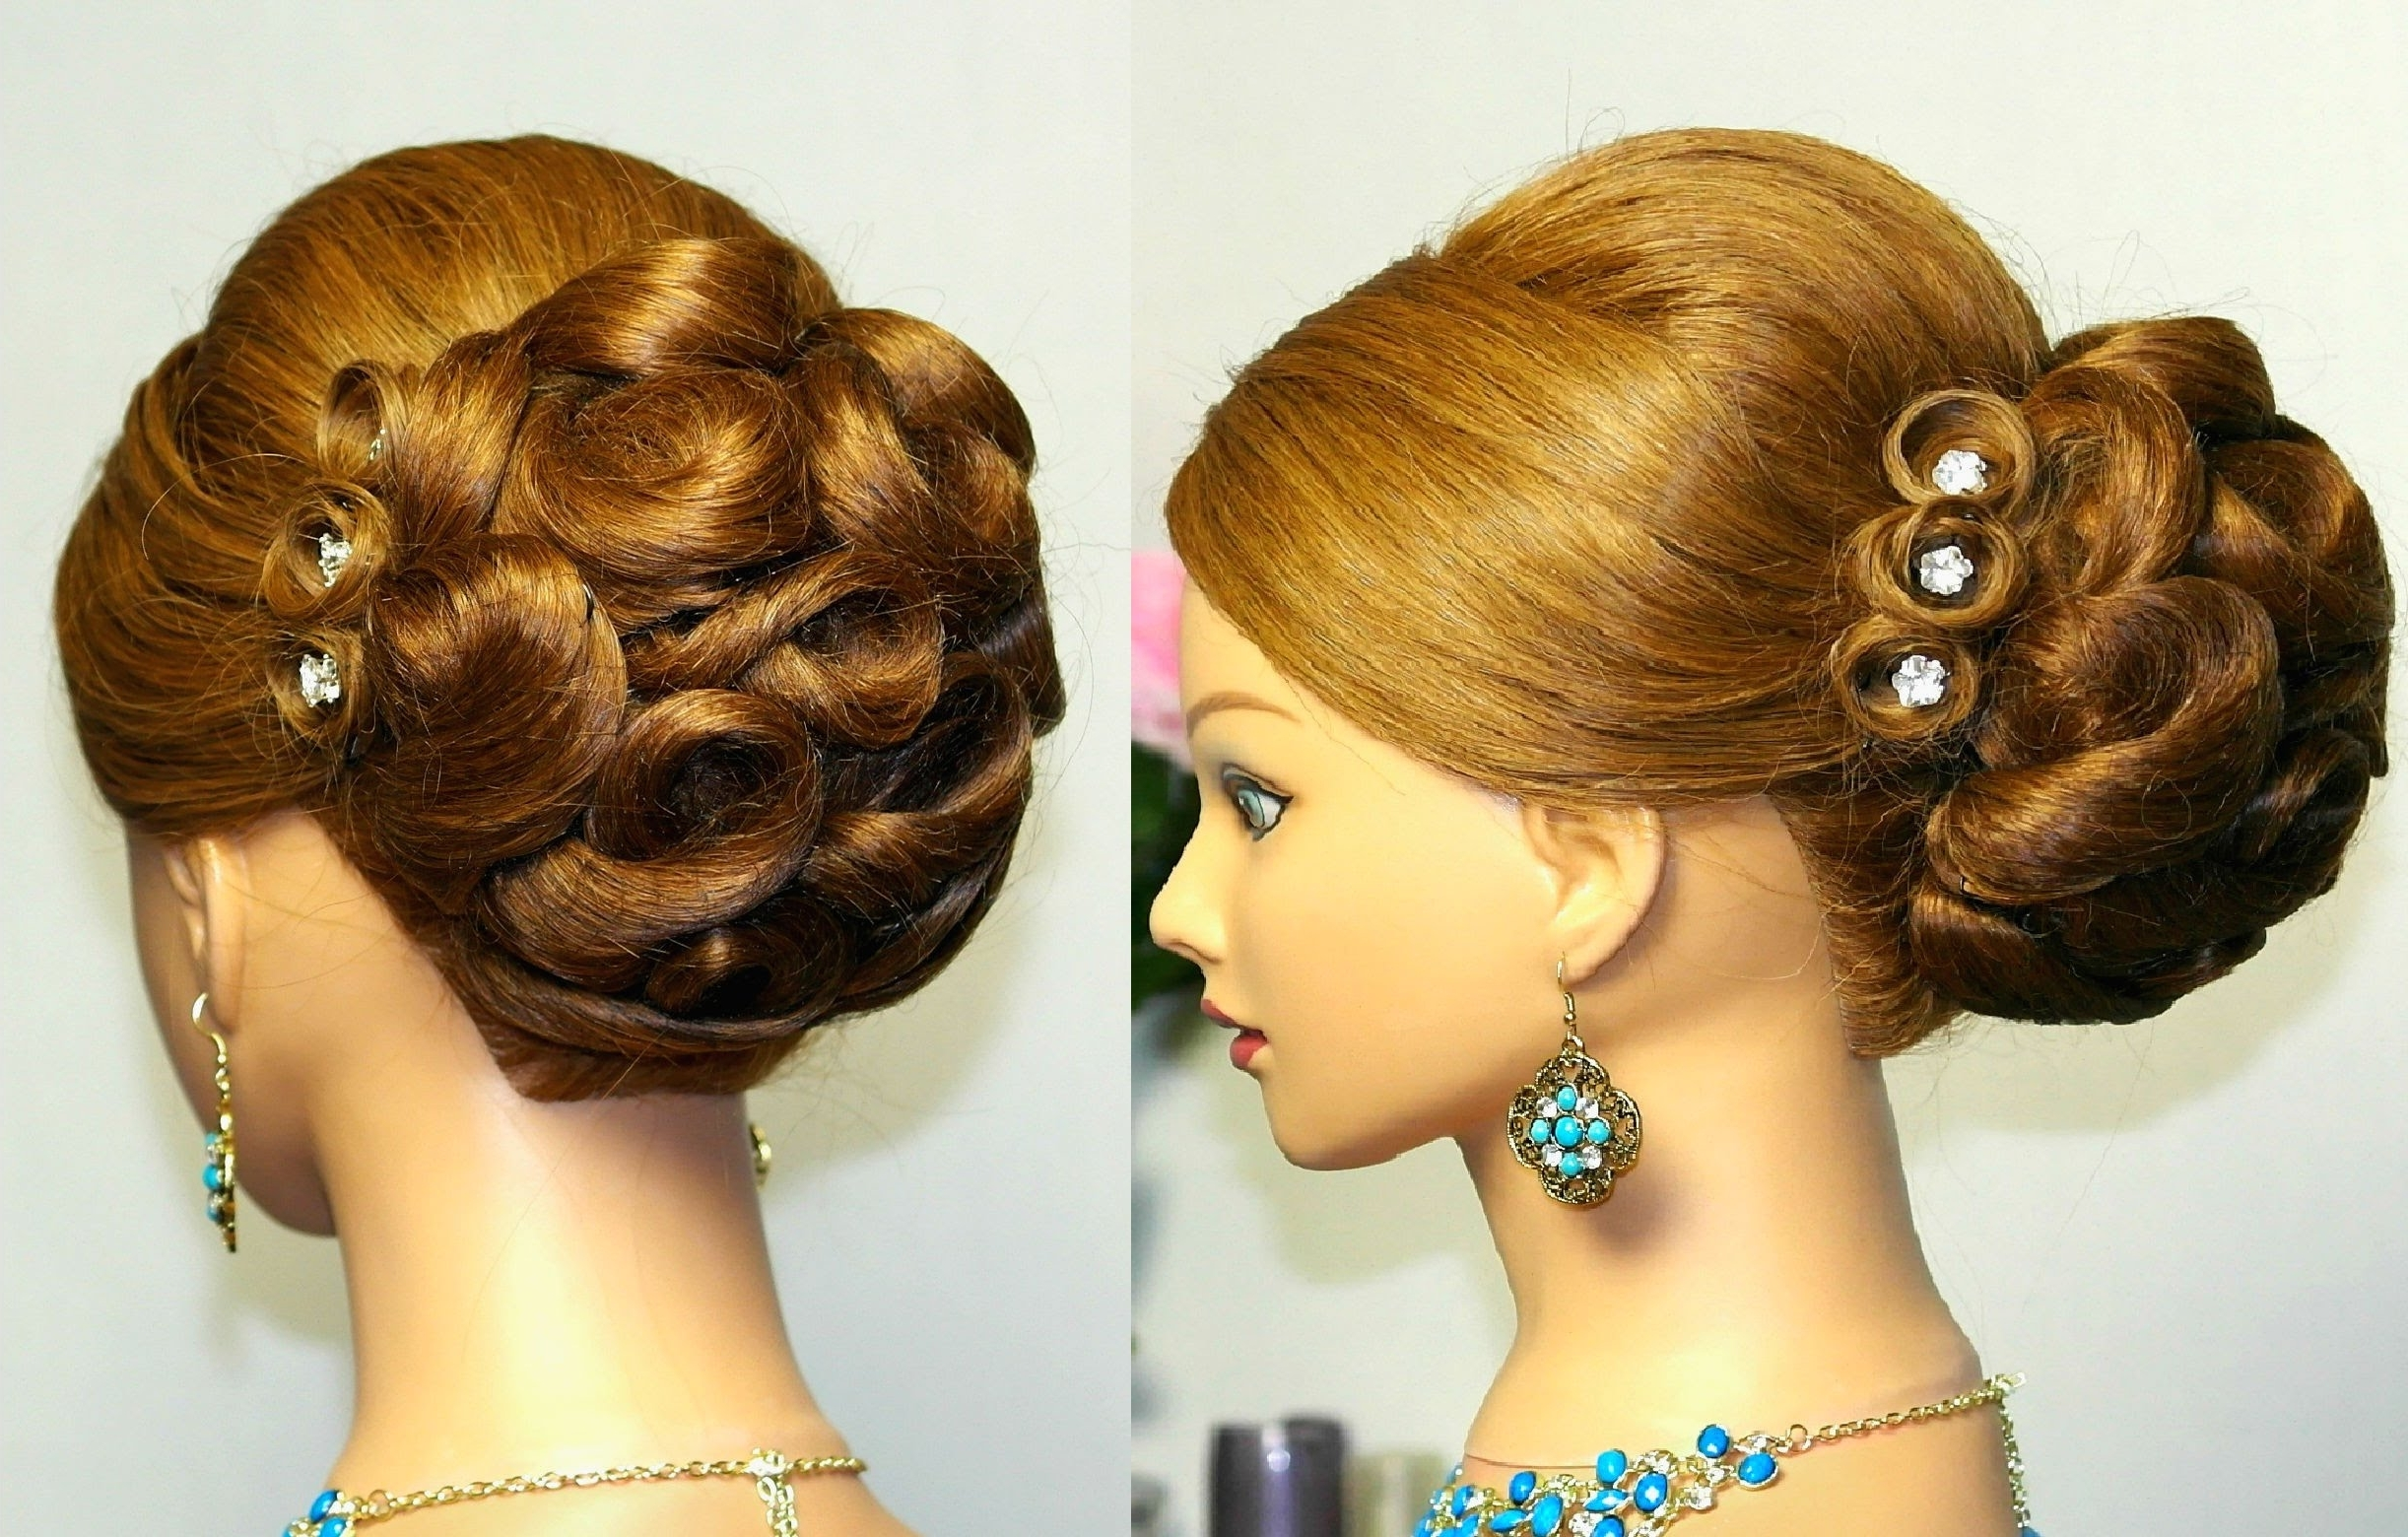 Prom Hairstyle For Long Hair (View 11 of 15)